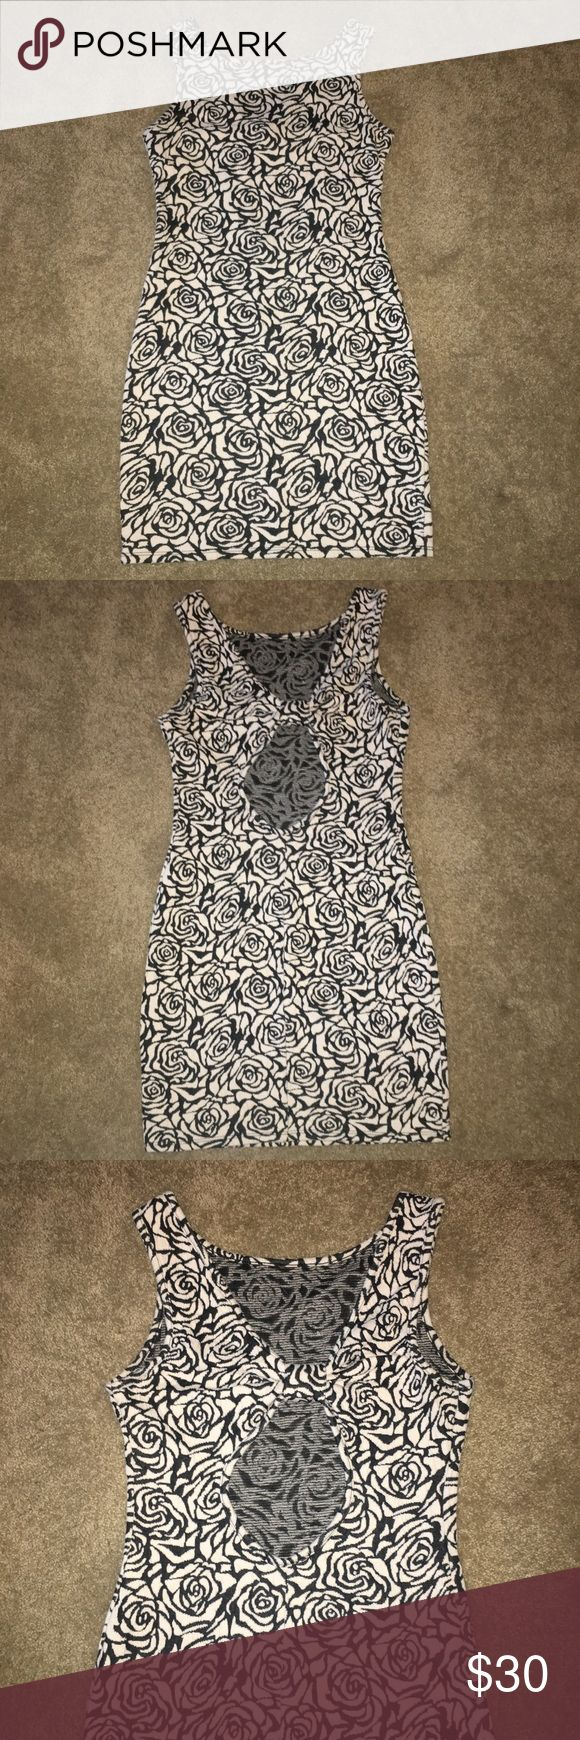 Rose bodycon dress Black & cream rose pattern bodycon dress with hole detail in the back Forever 21 Dresses